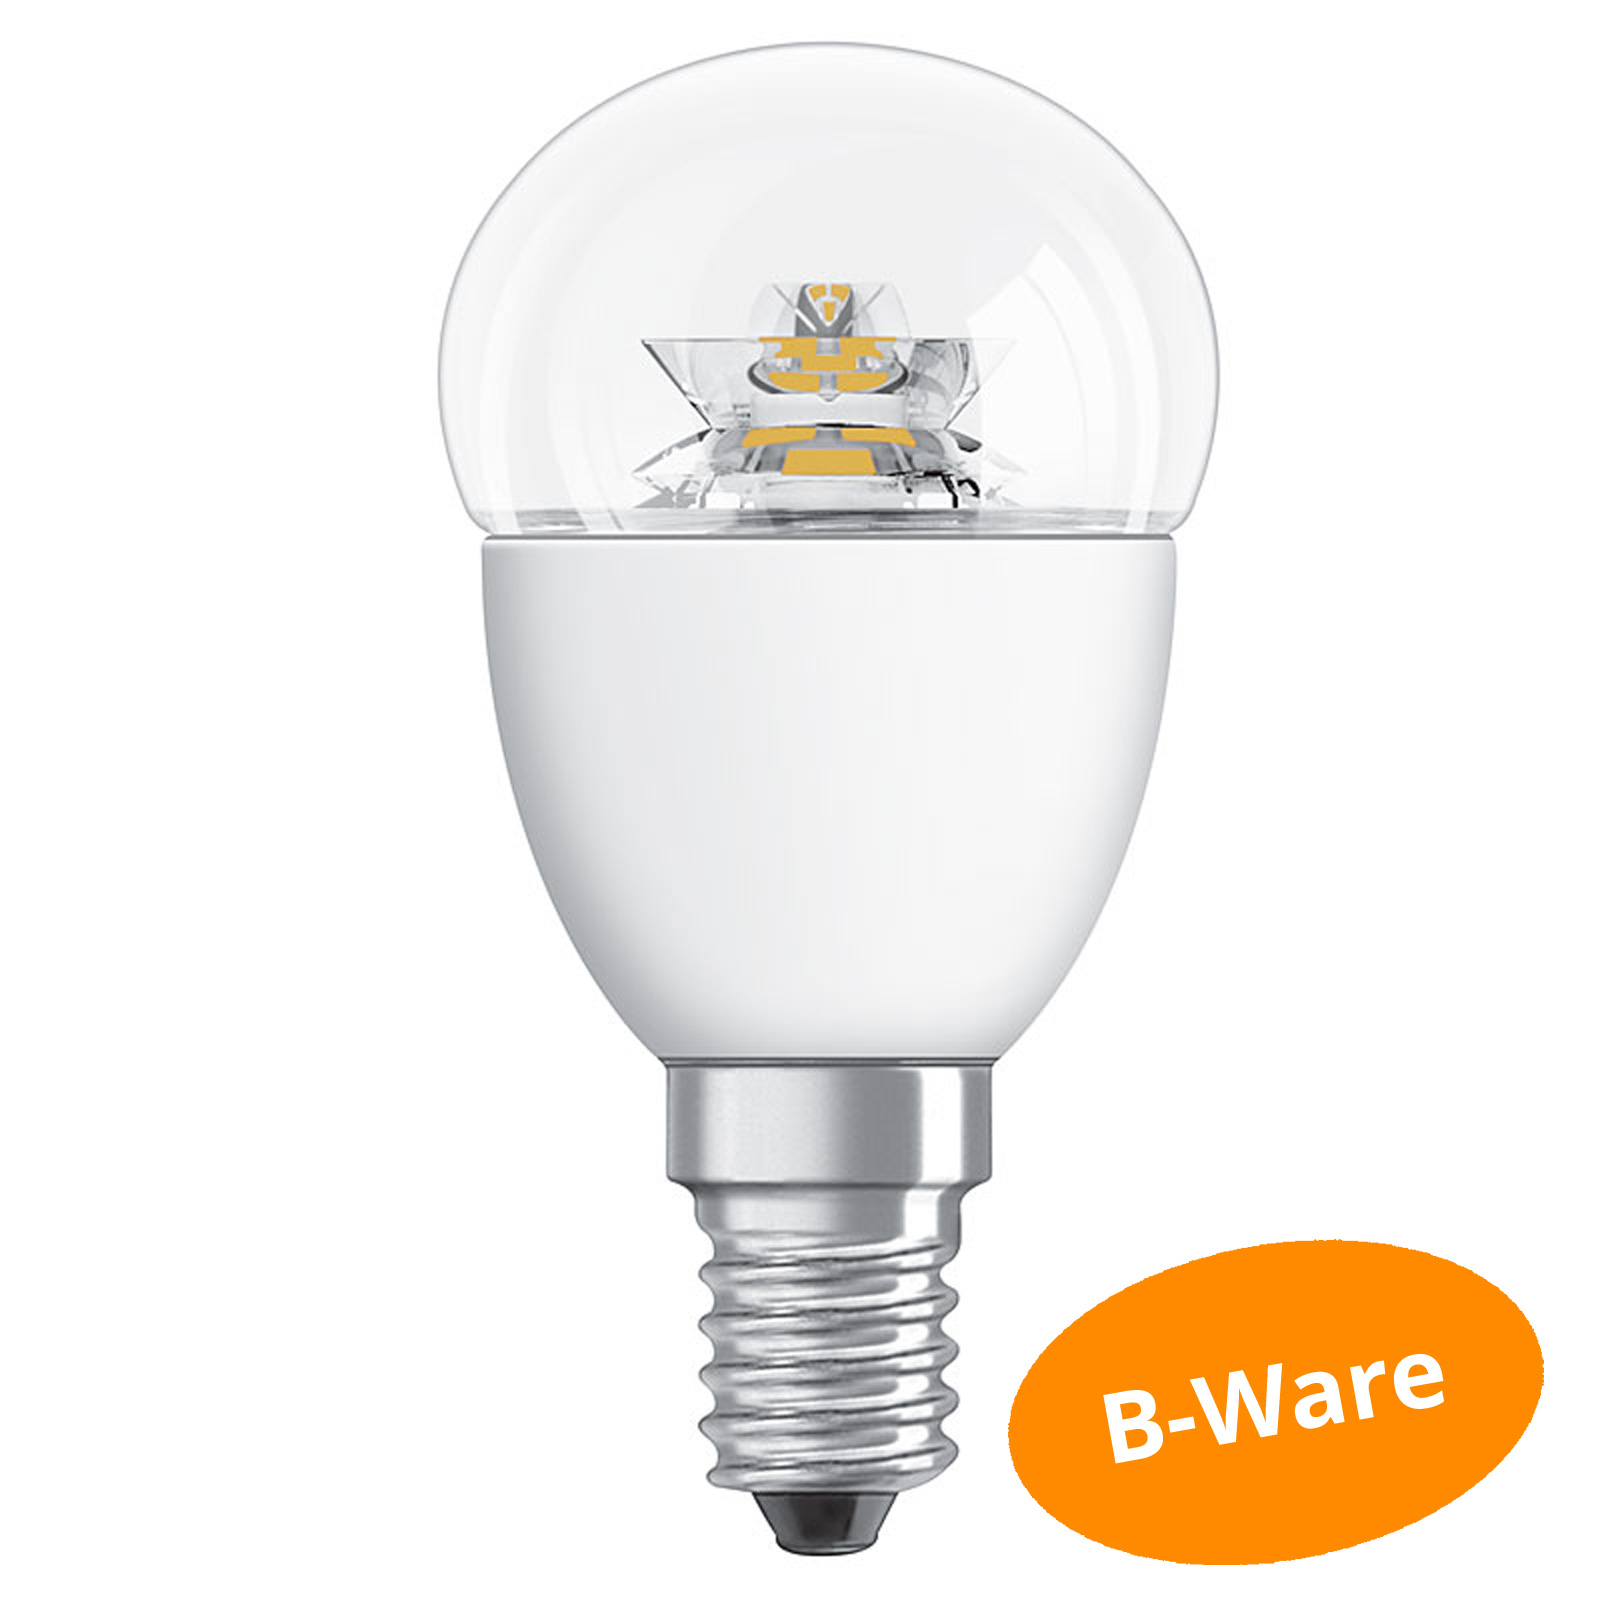 B10718-LED-Lampe-OSRAM-E14-4W-Ersatz-fuer-25-Watt-250-Lumen-warmweiss-dimmbar-1 Wunderbar Led Mr11 Gu4 Warmweiss Dekorationen